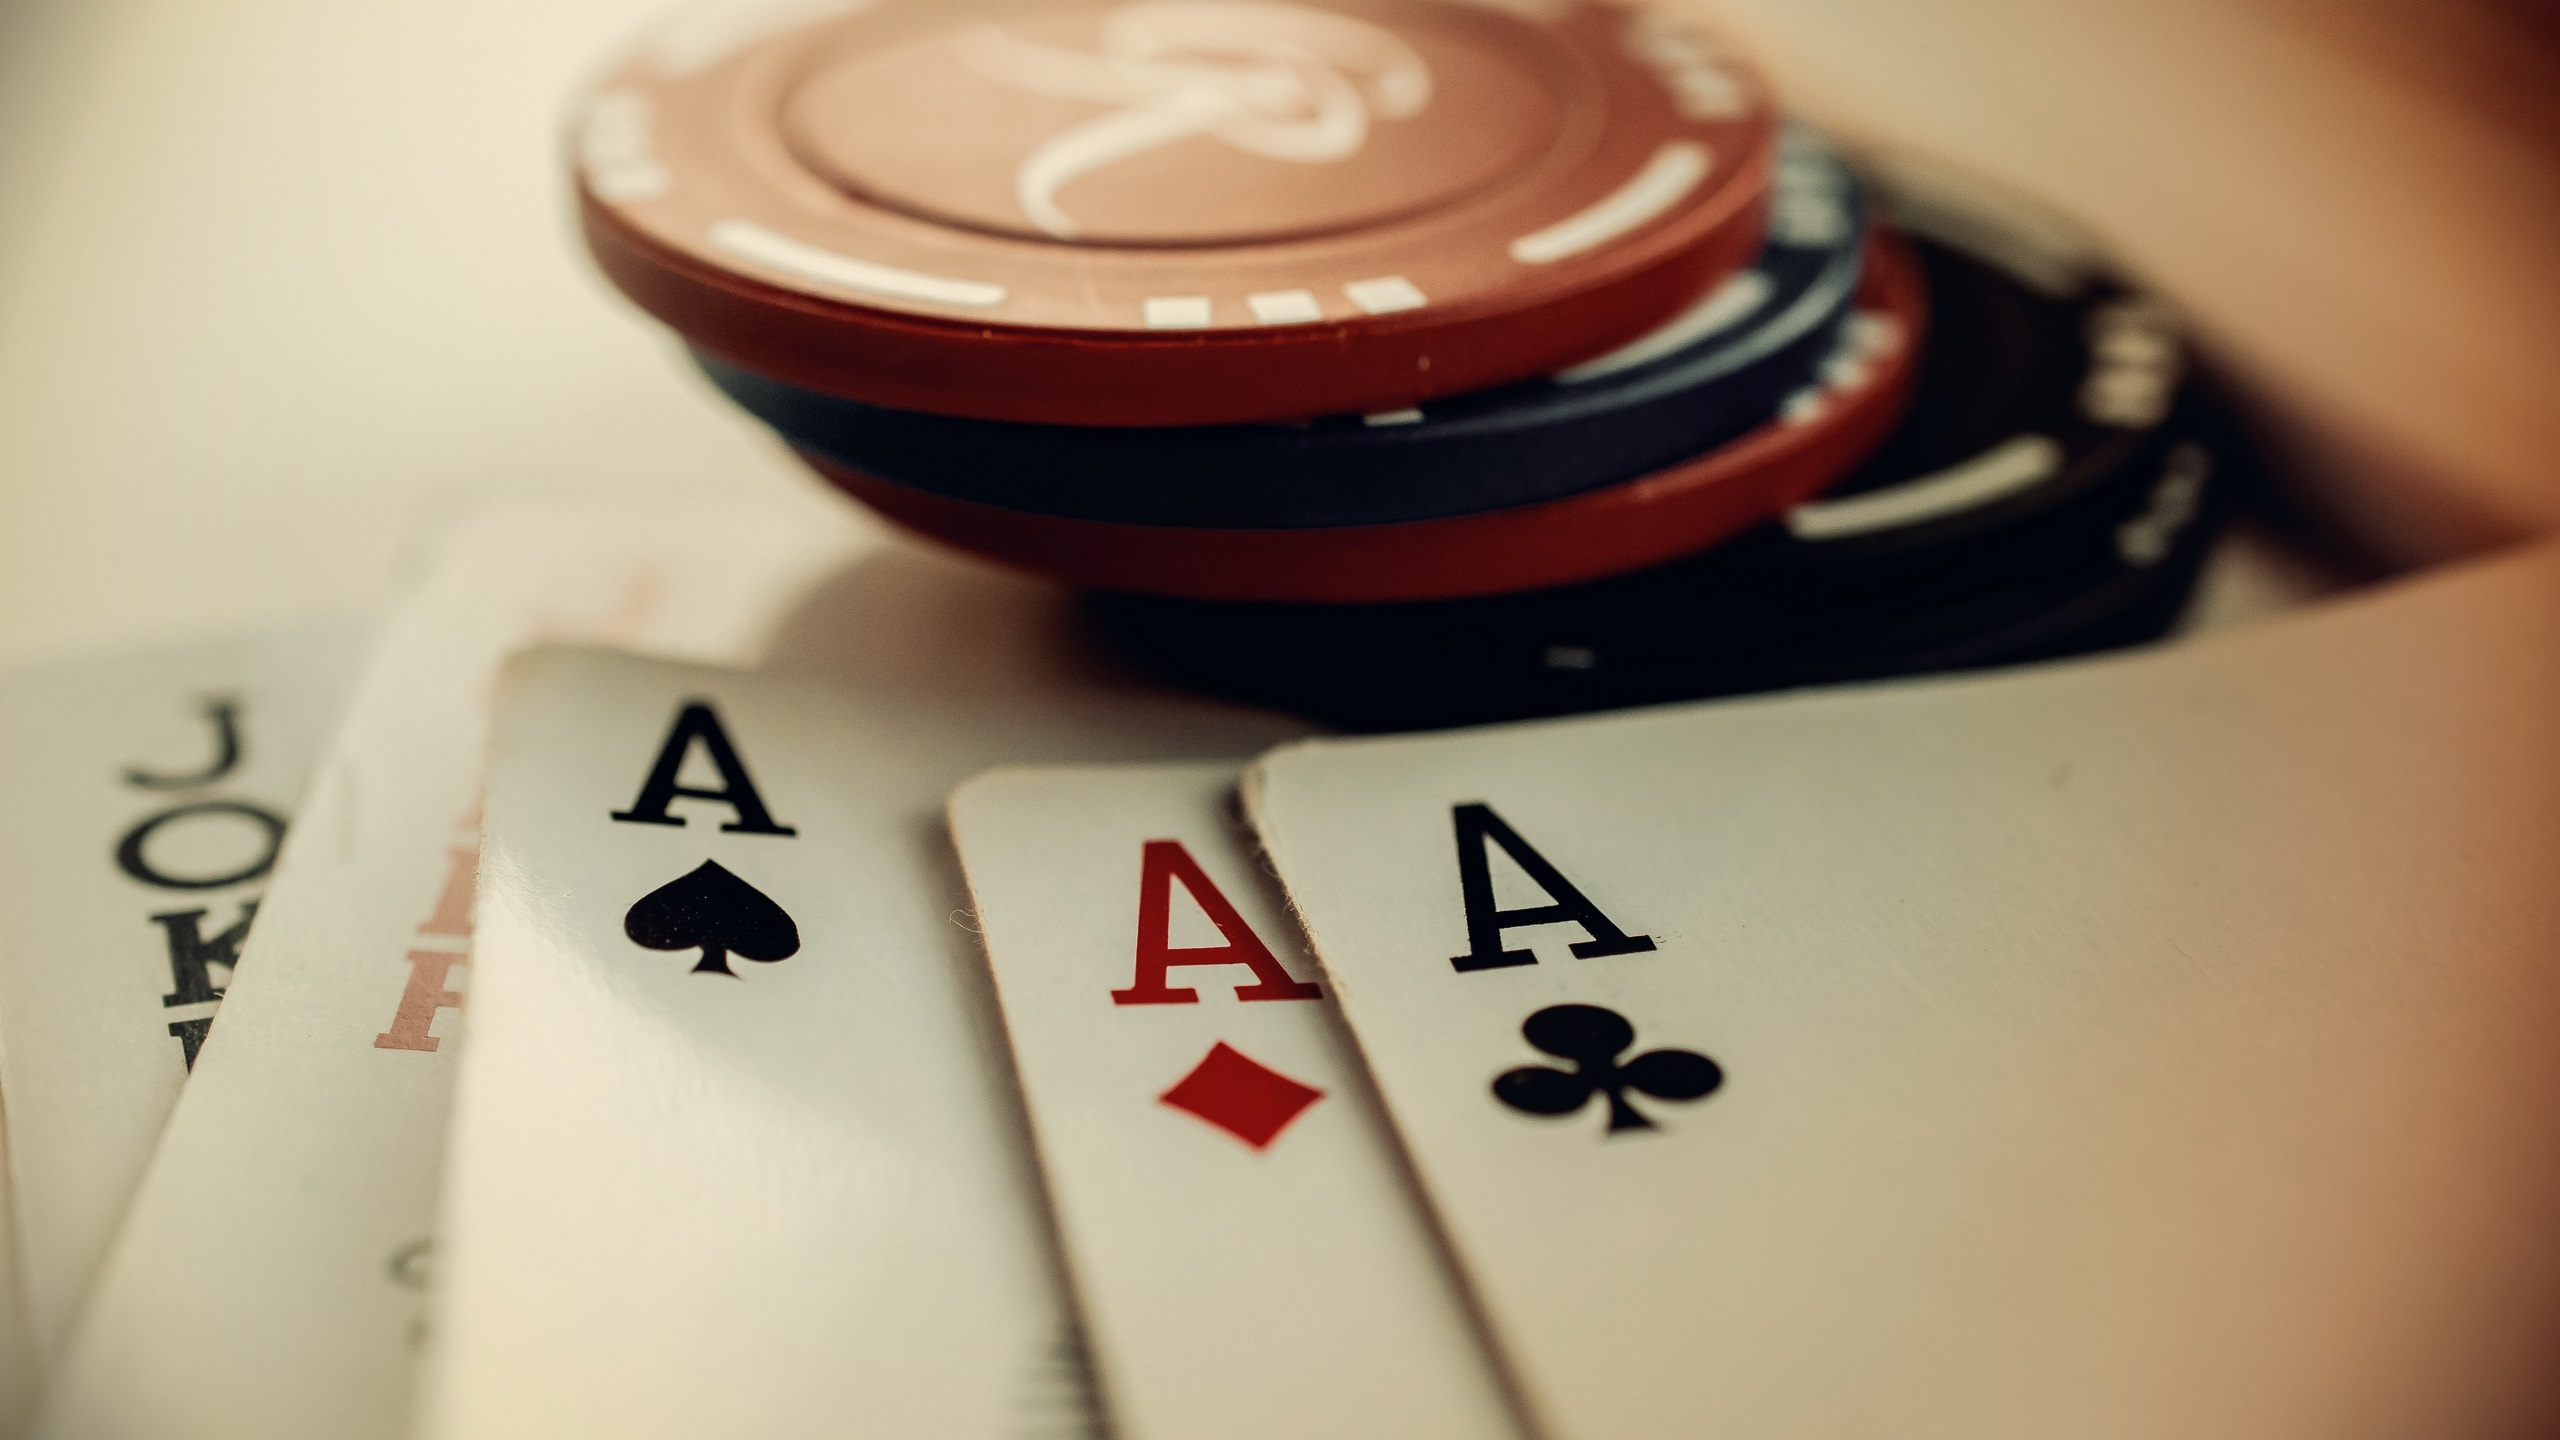 Wallpaper Chips And Poker Cards 2560x1600 Hd Picture Image